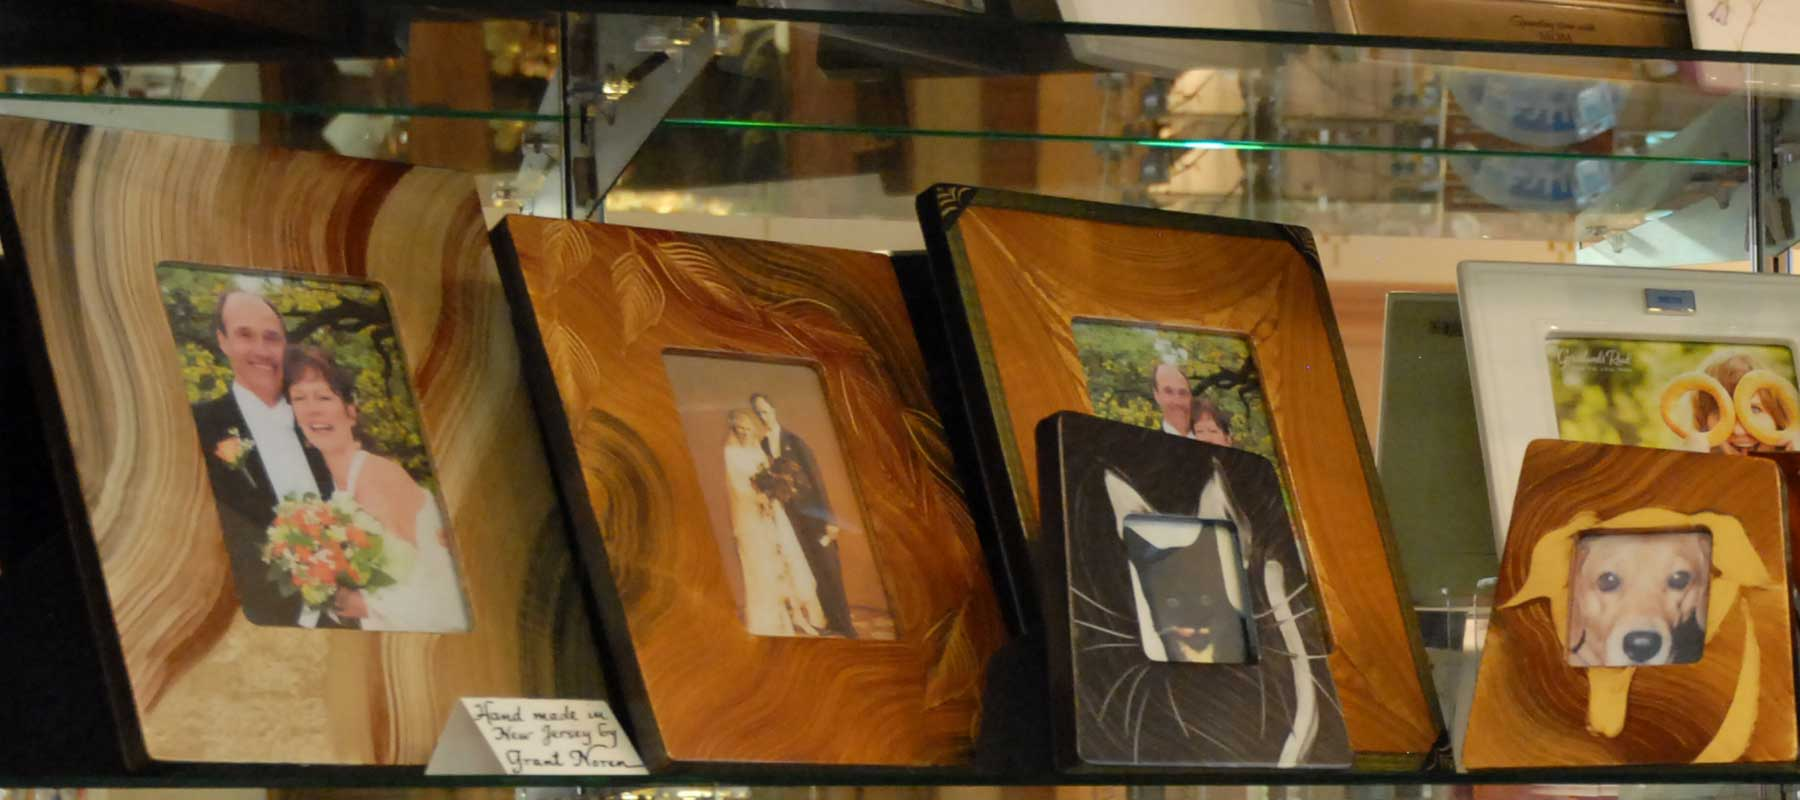 Wood phot frames